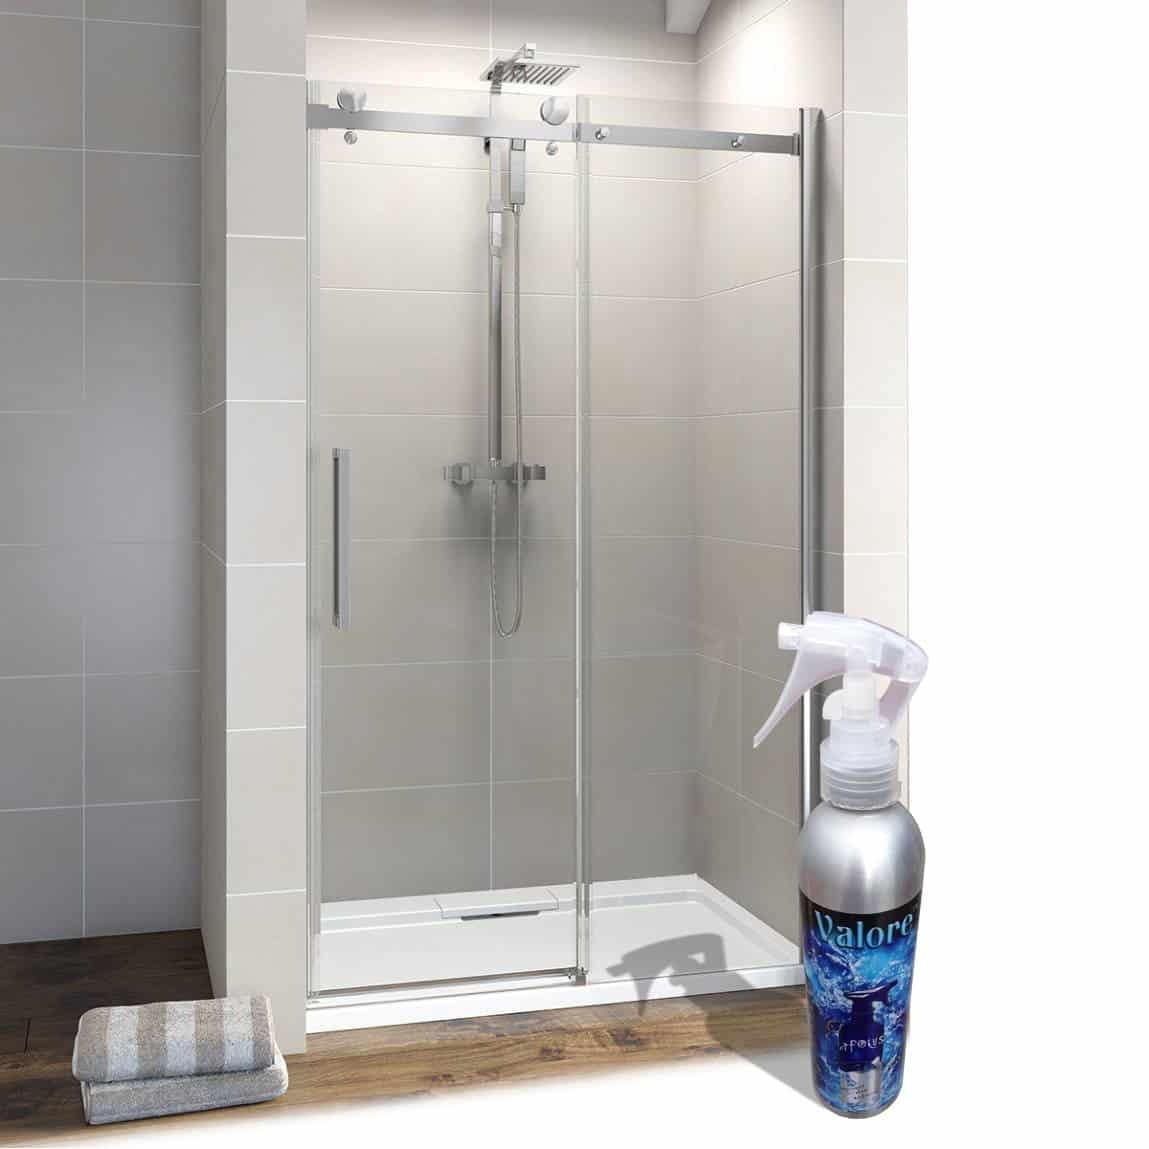 Shower Glass Protector Valore Glass Sealer Pfokus